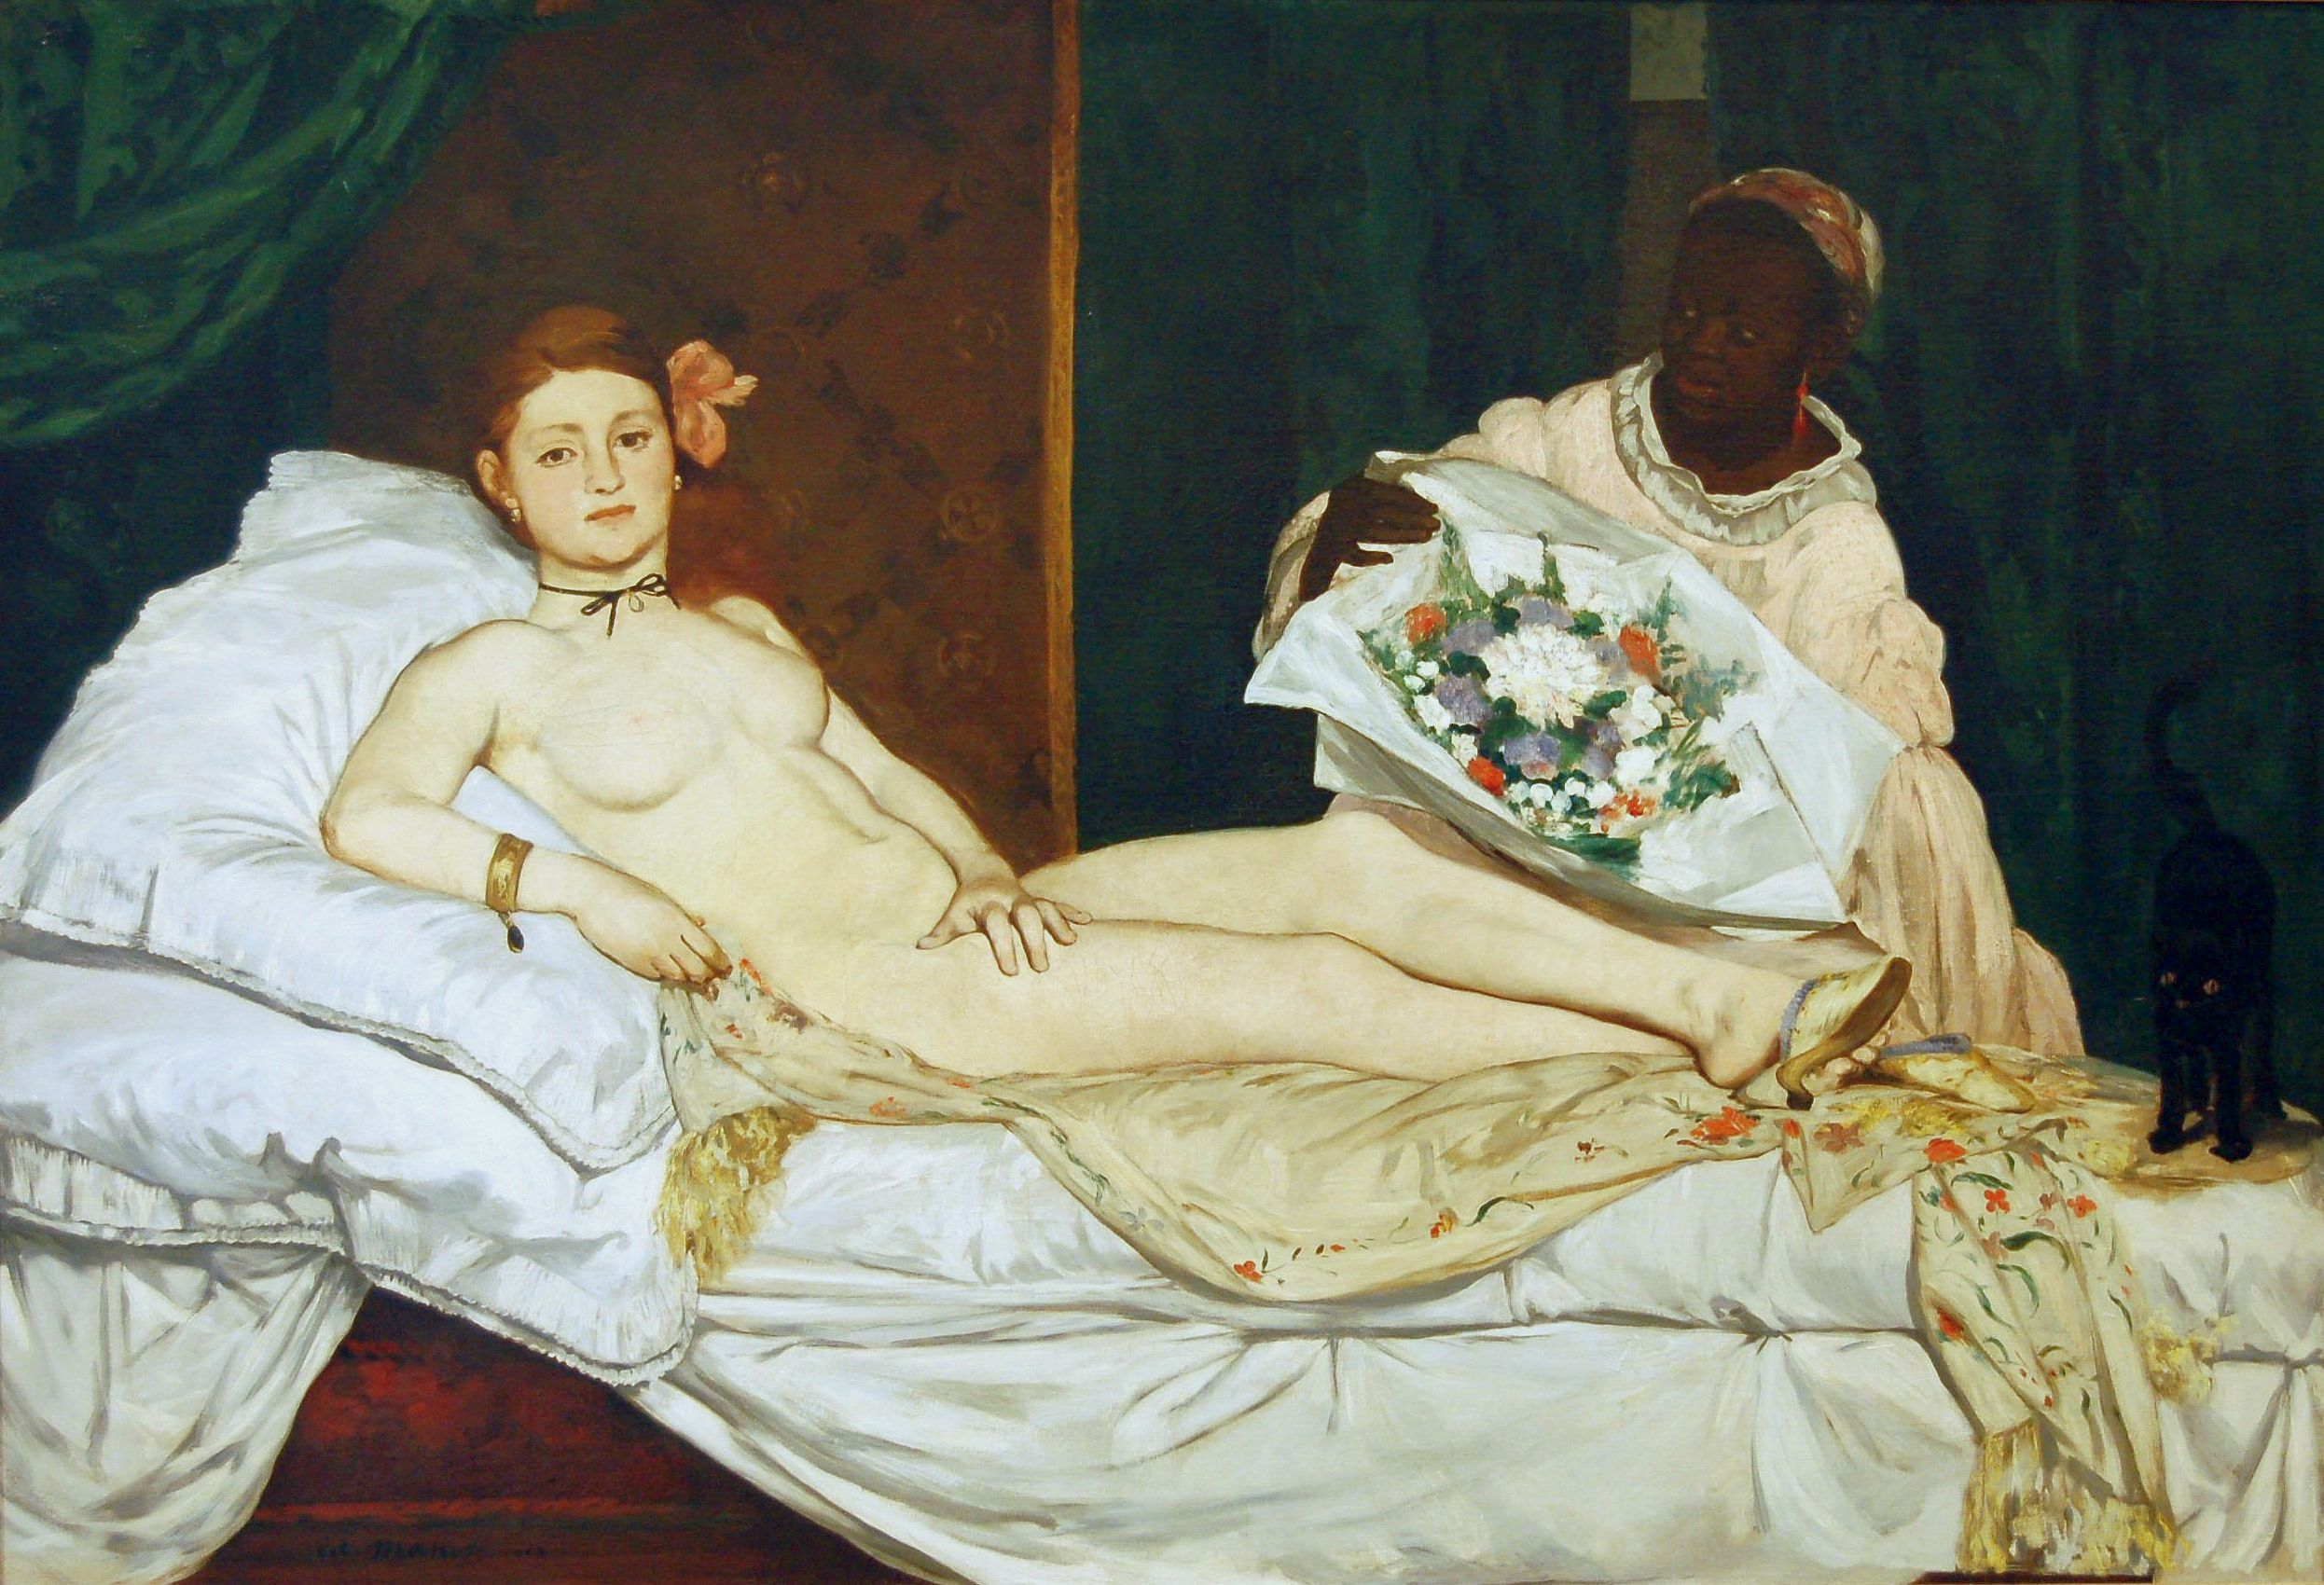 Olympia (1863), Edouard Manet, Musée d'Orsay